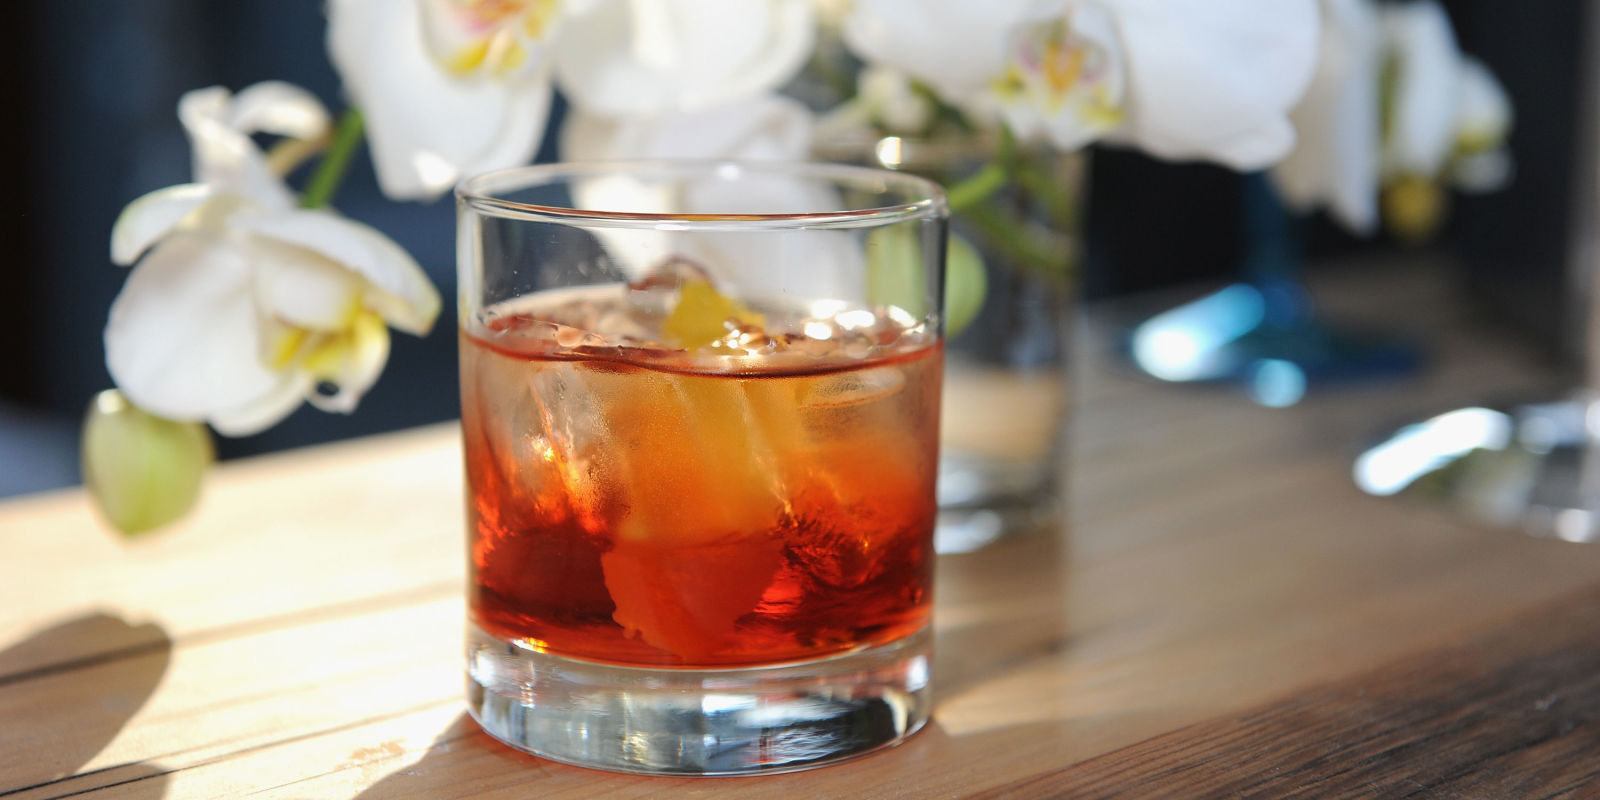 Best Negroni Recipe - How to Make the Ultimate Negroni